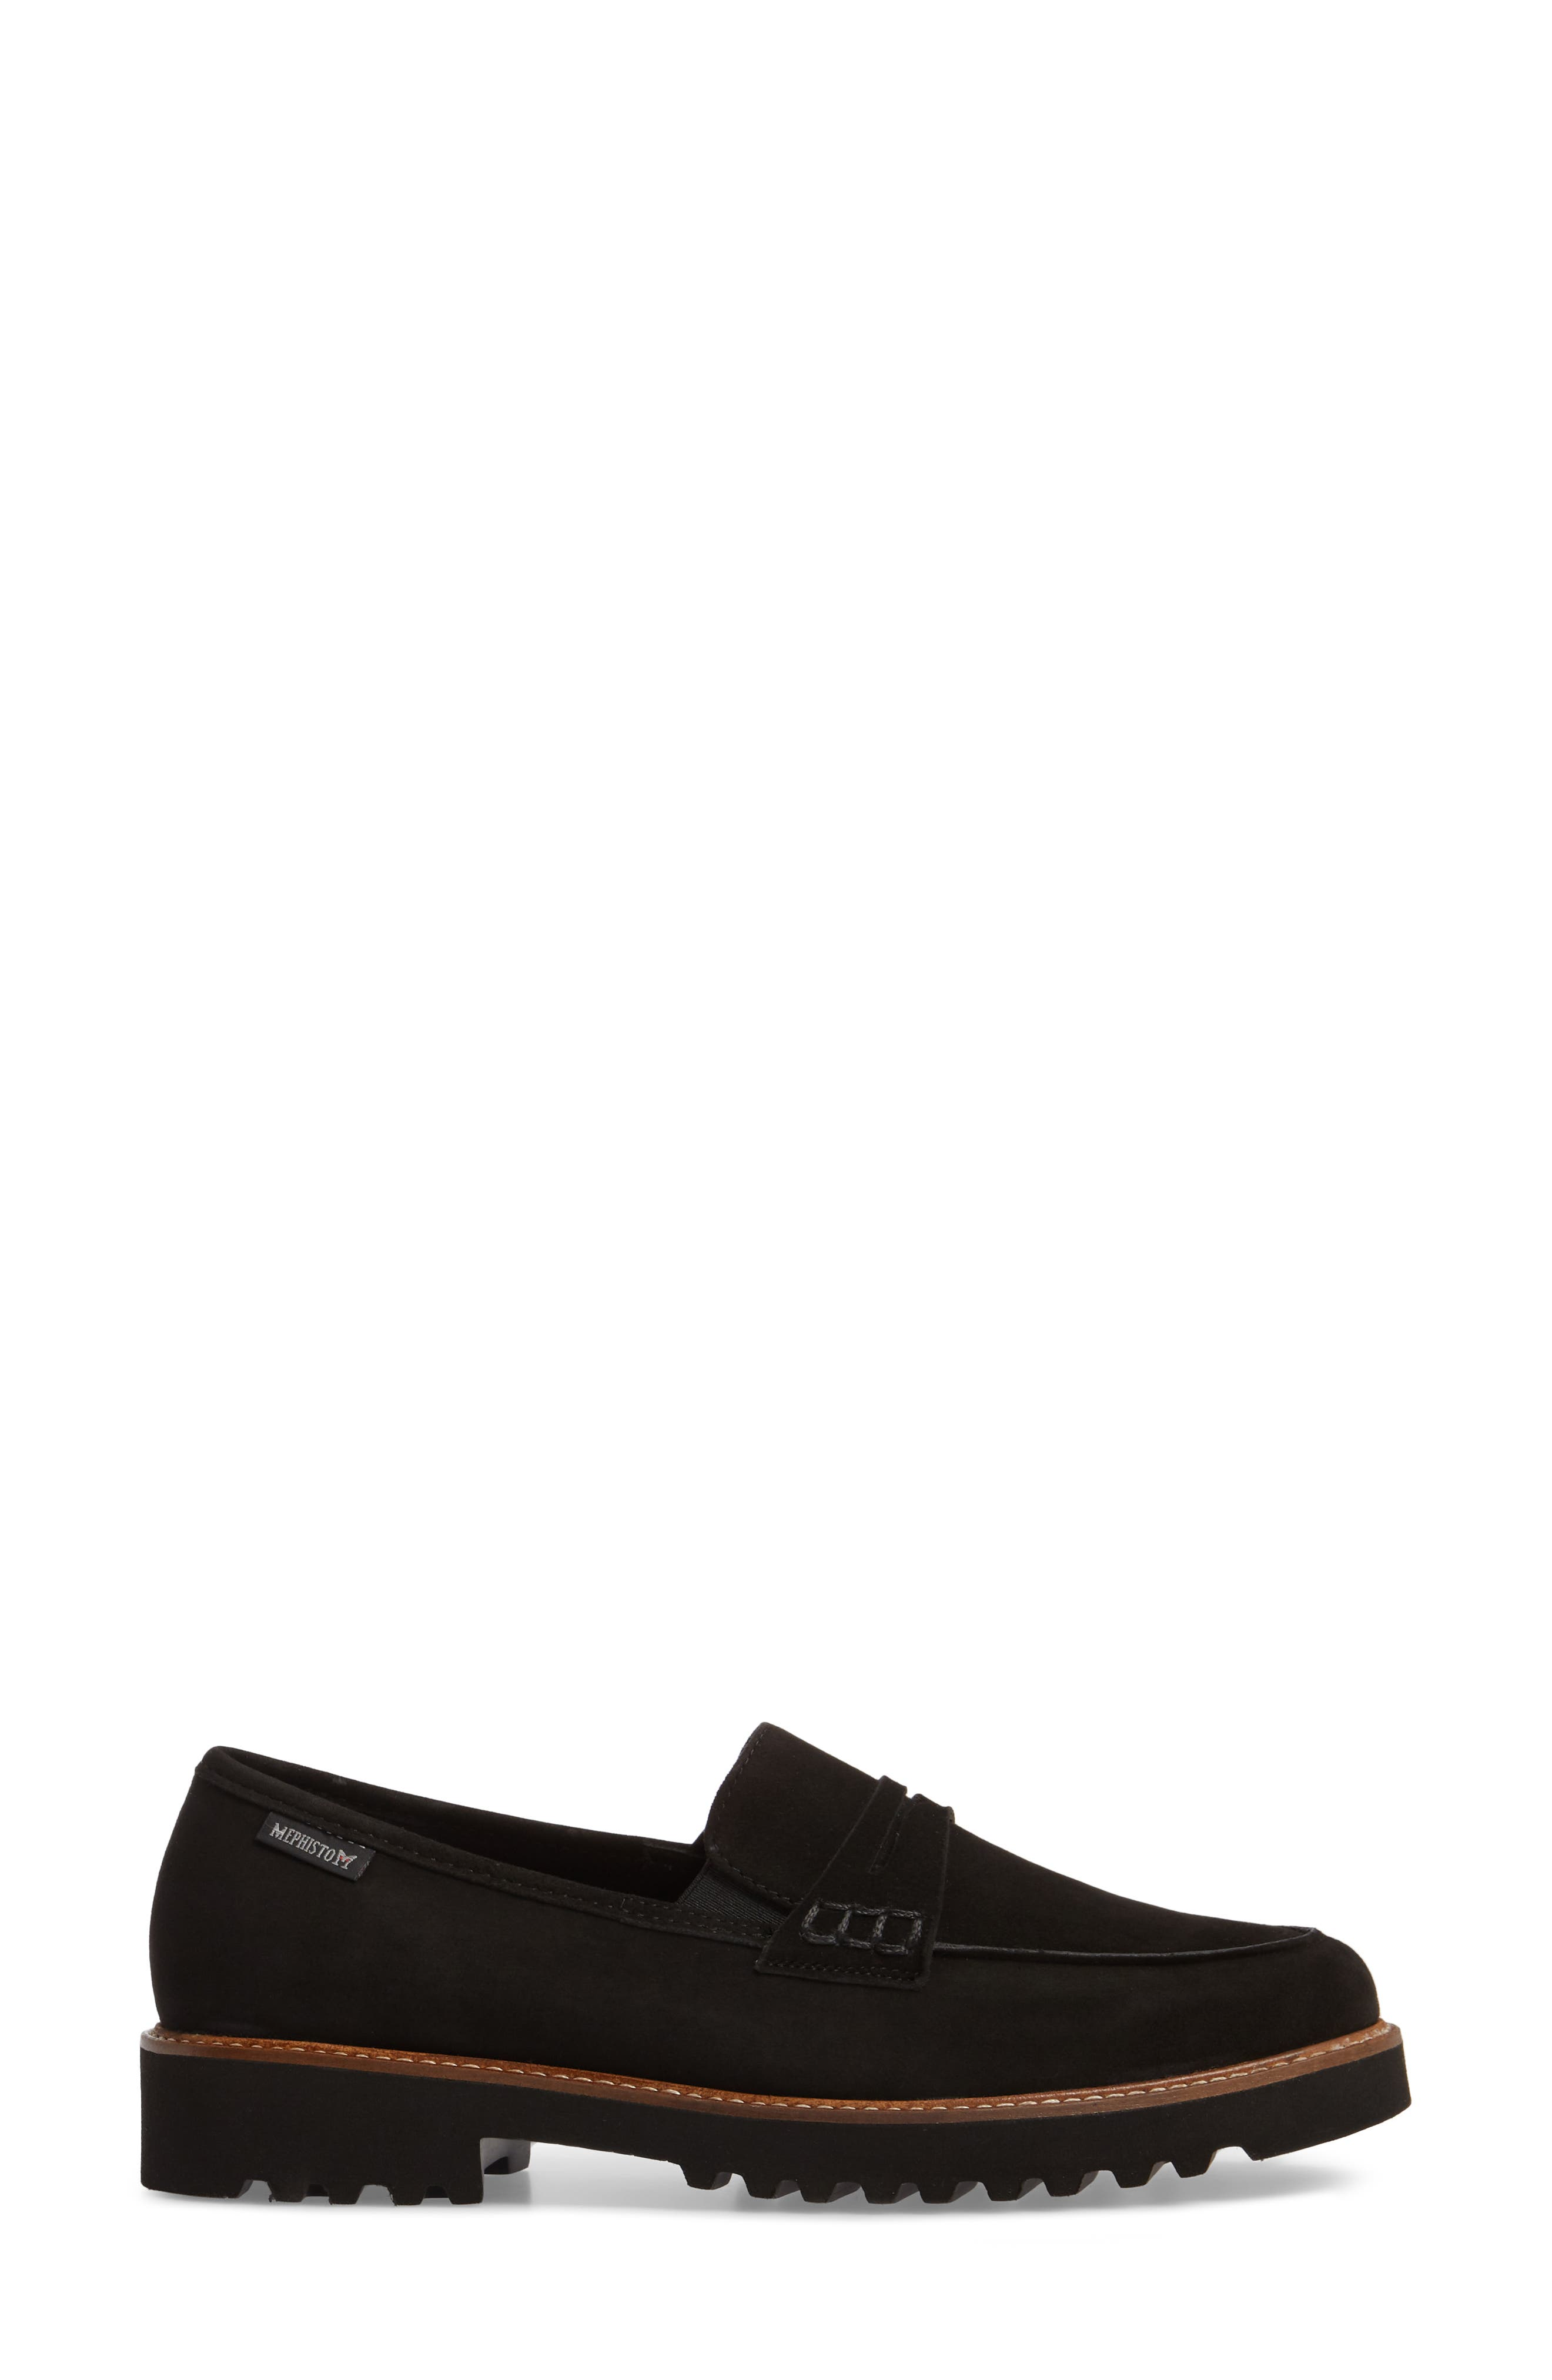 Sidney Penny Loafer,                             Alternate thumbnail 3, color,                             001